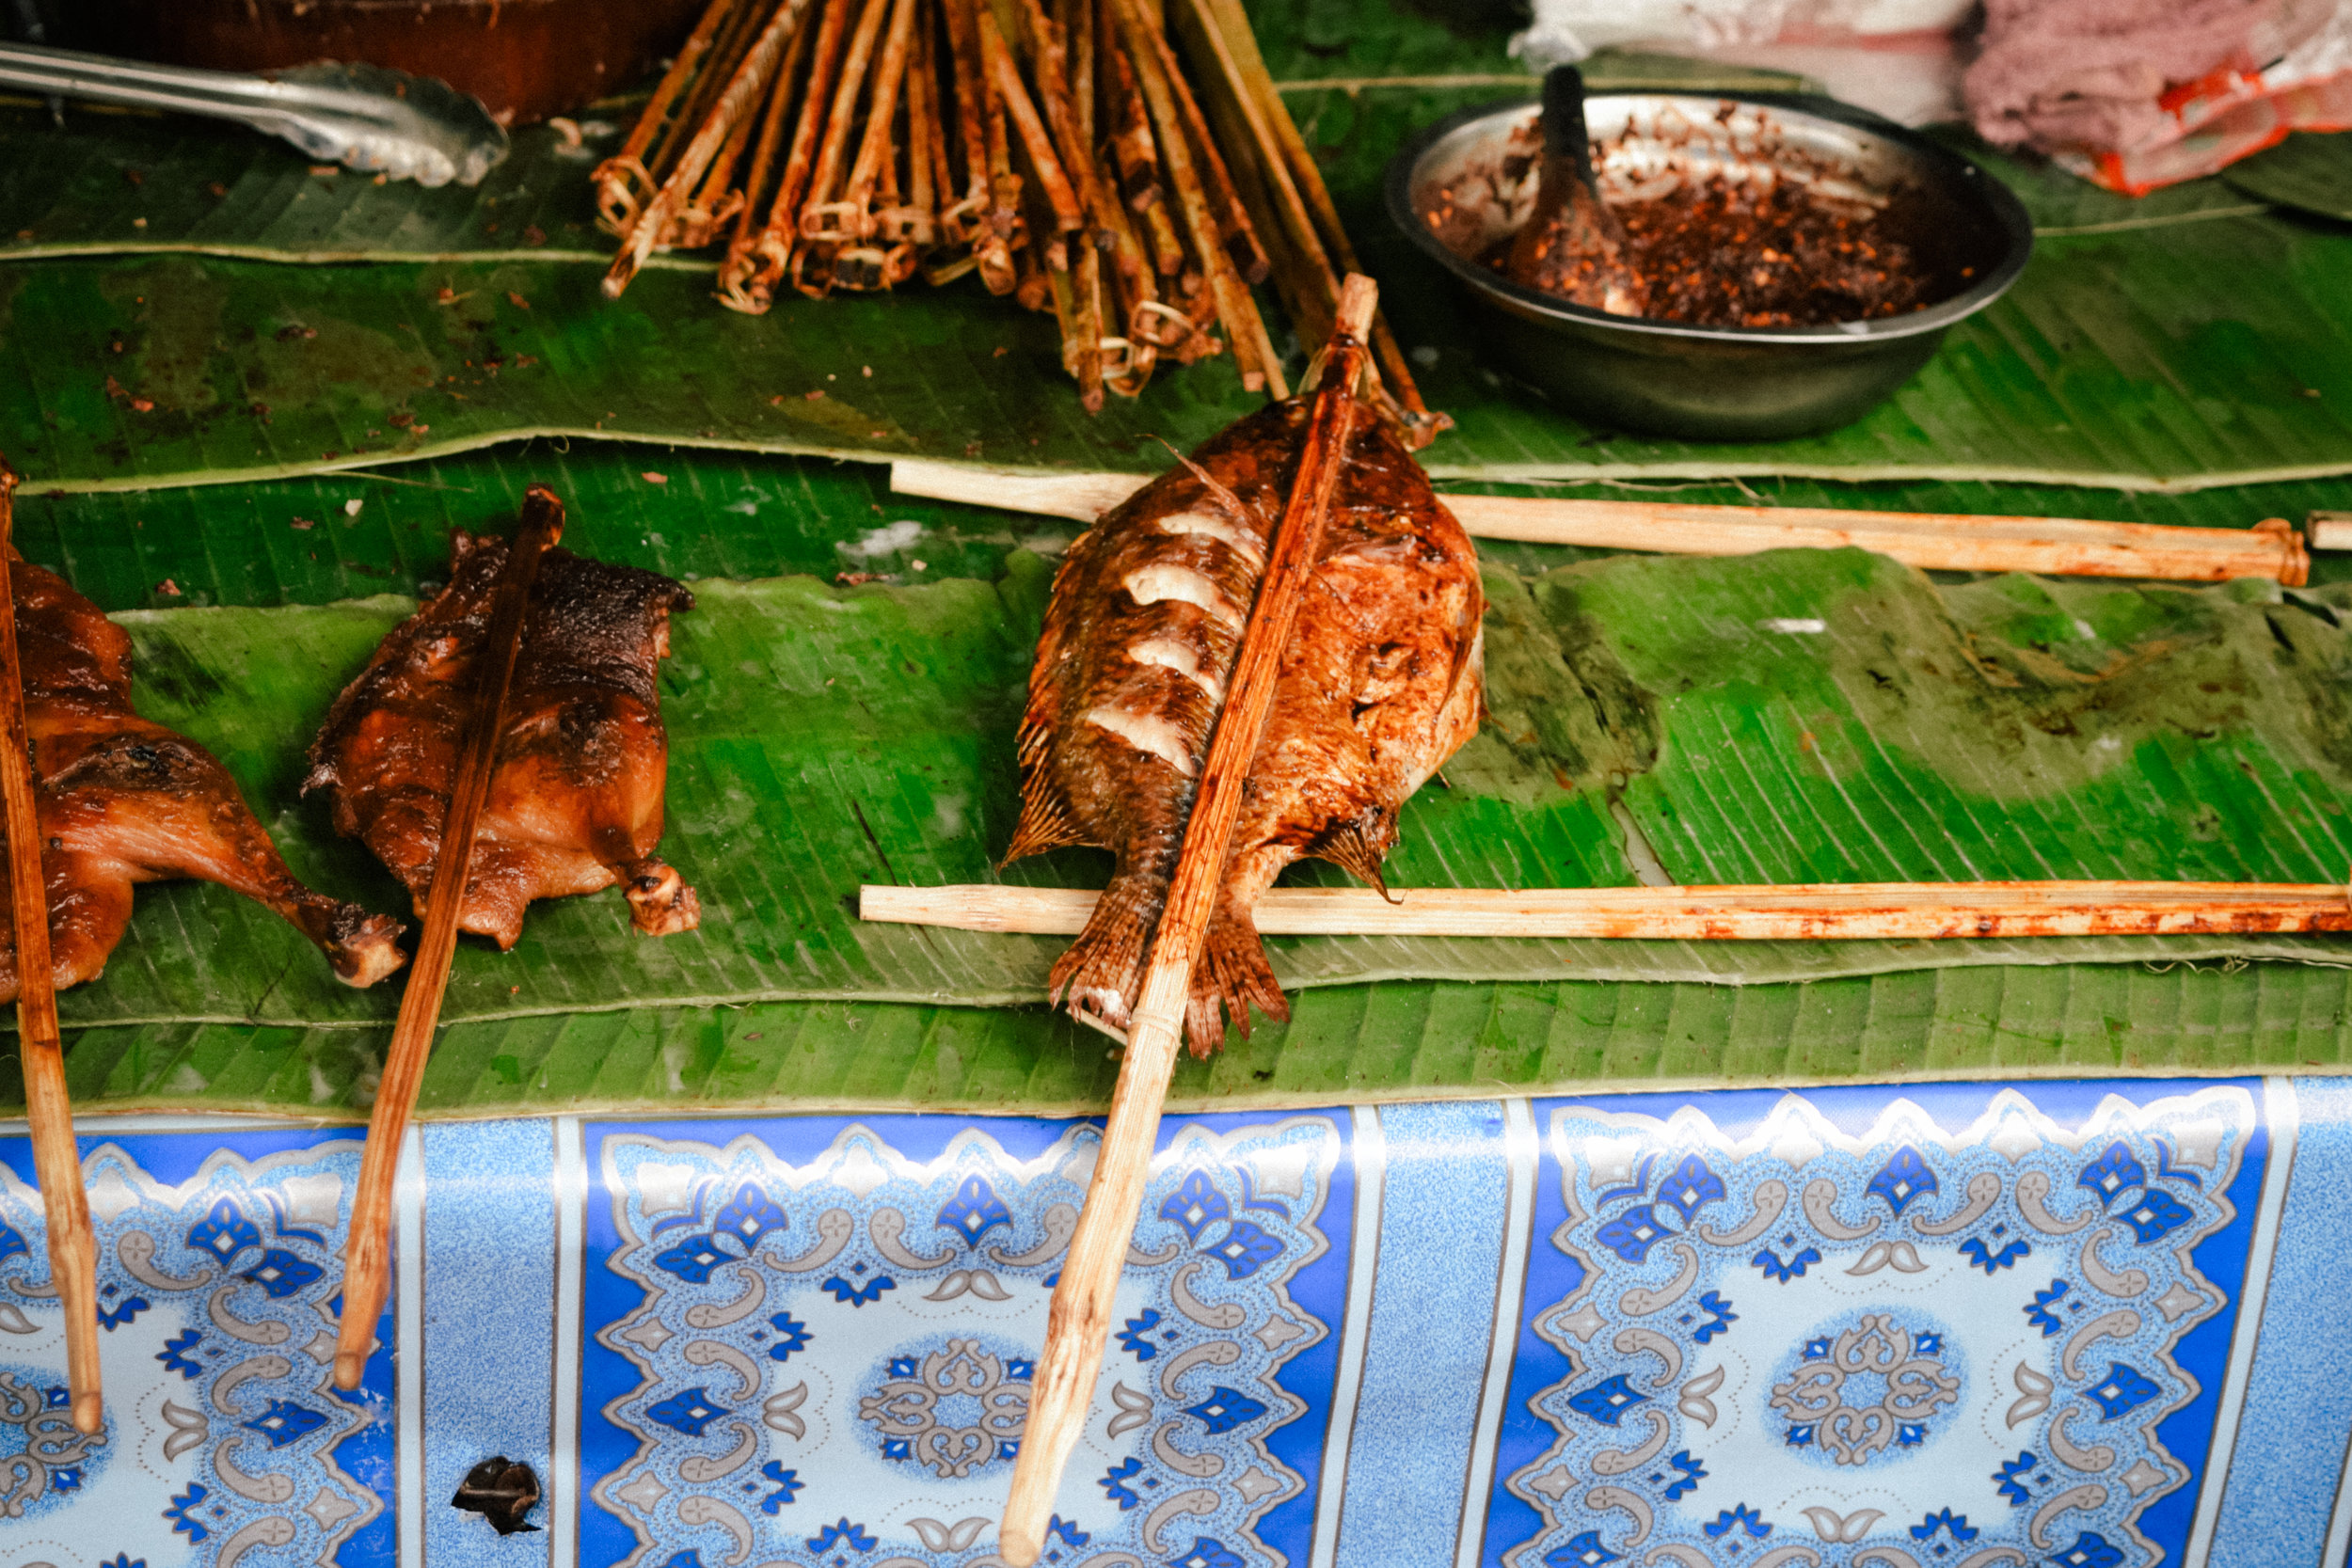 skewered fish in Laos